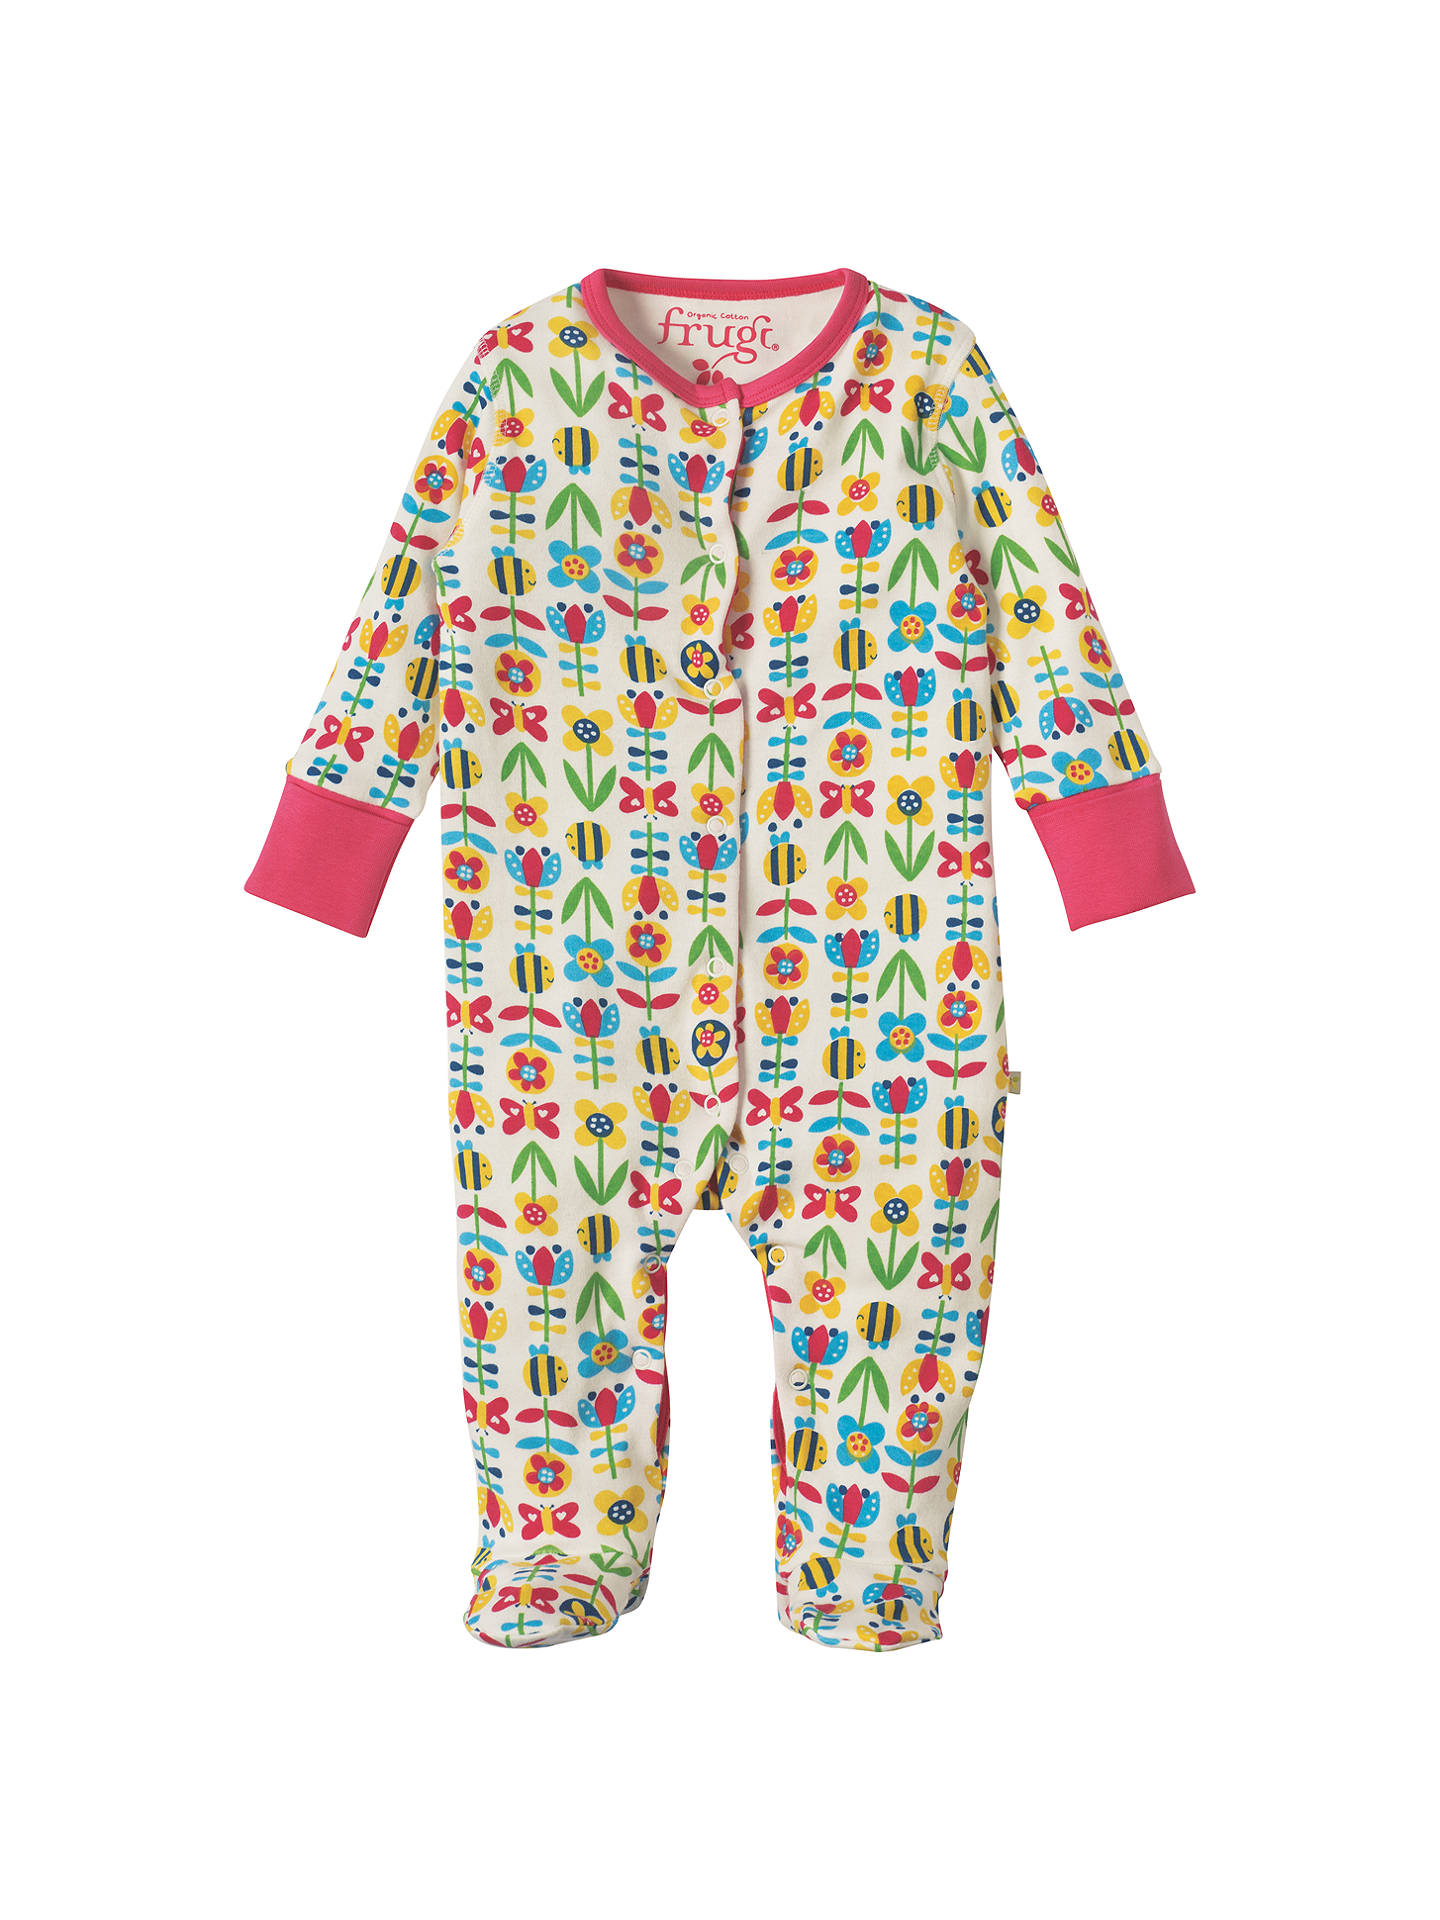 Baby & Toddler Clothing Initiative Two Cute All-in One-pieces one Sleepsuits Age 12 Months